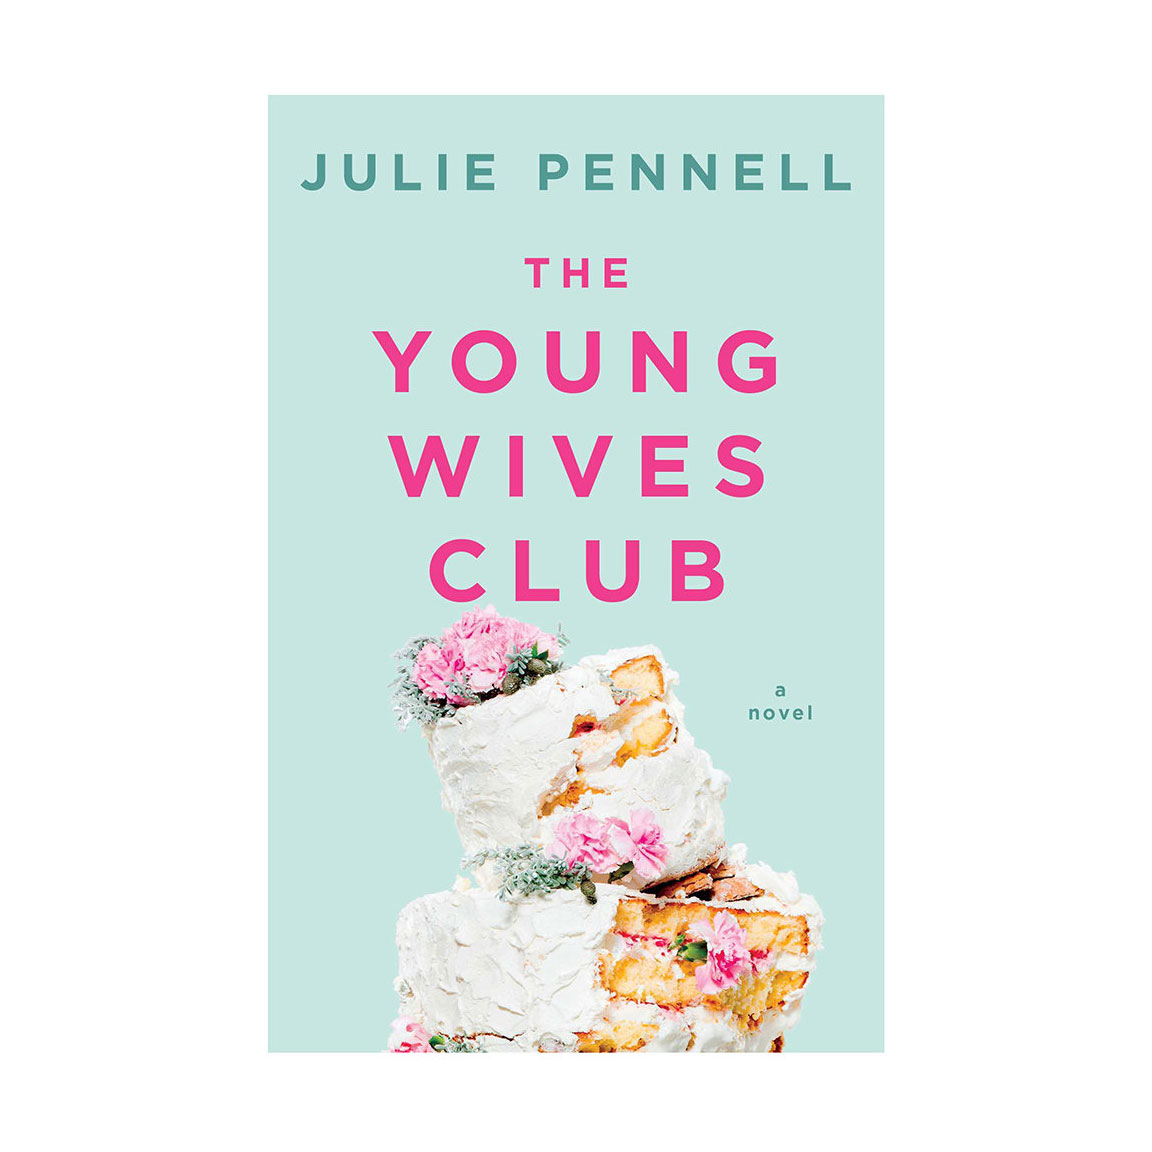 The Young Wives Club Book Cover